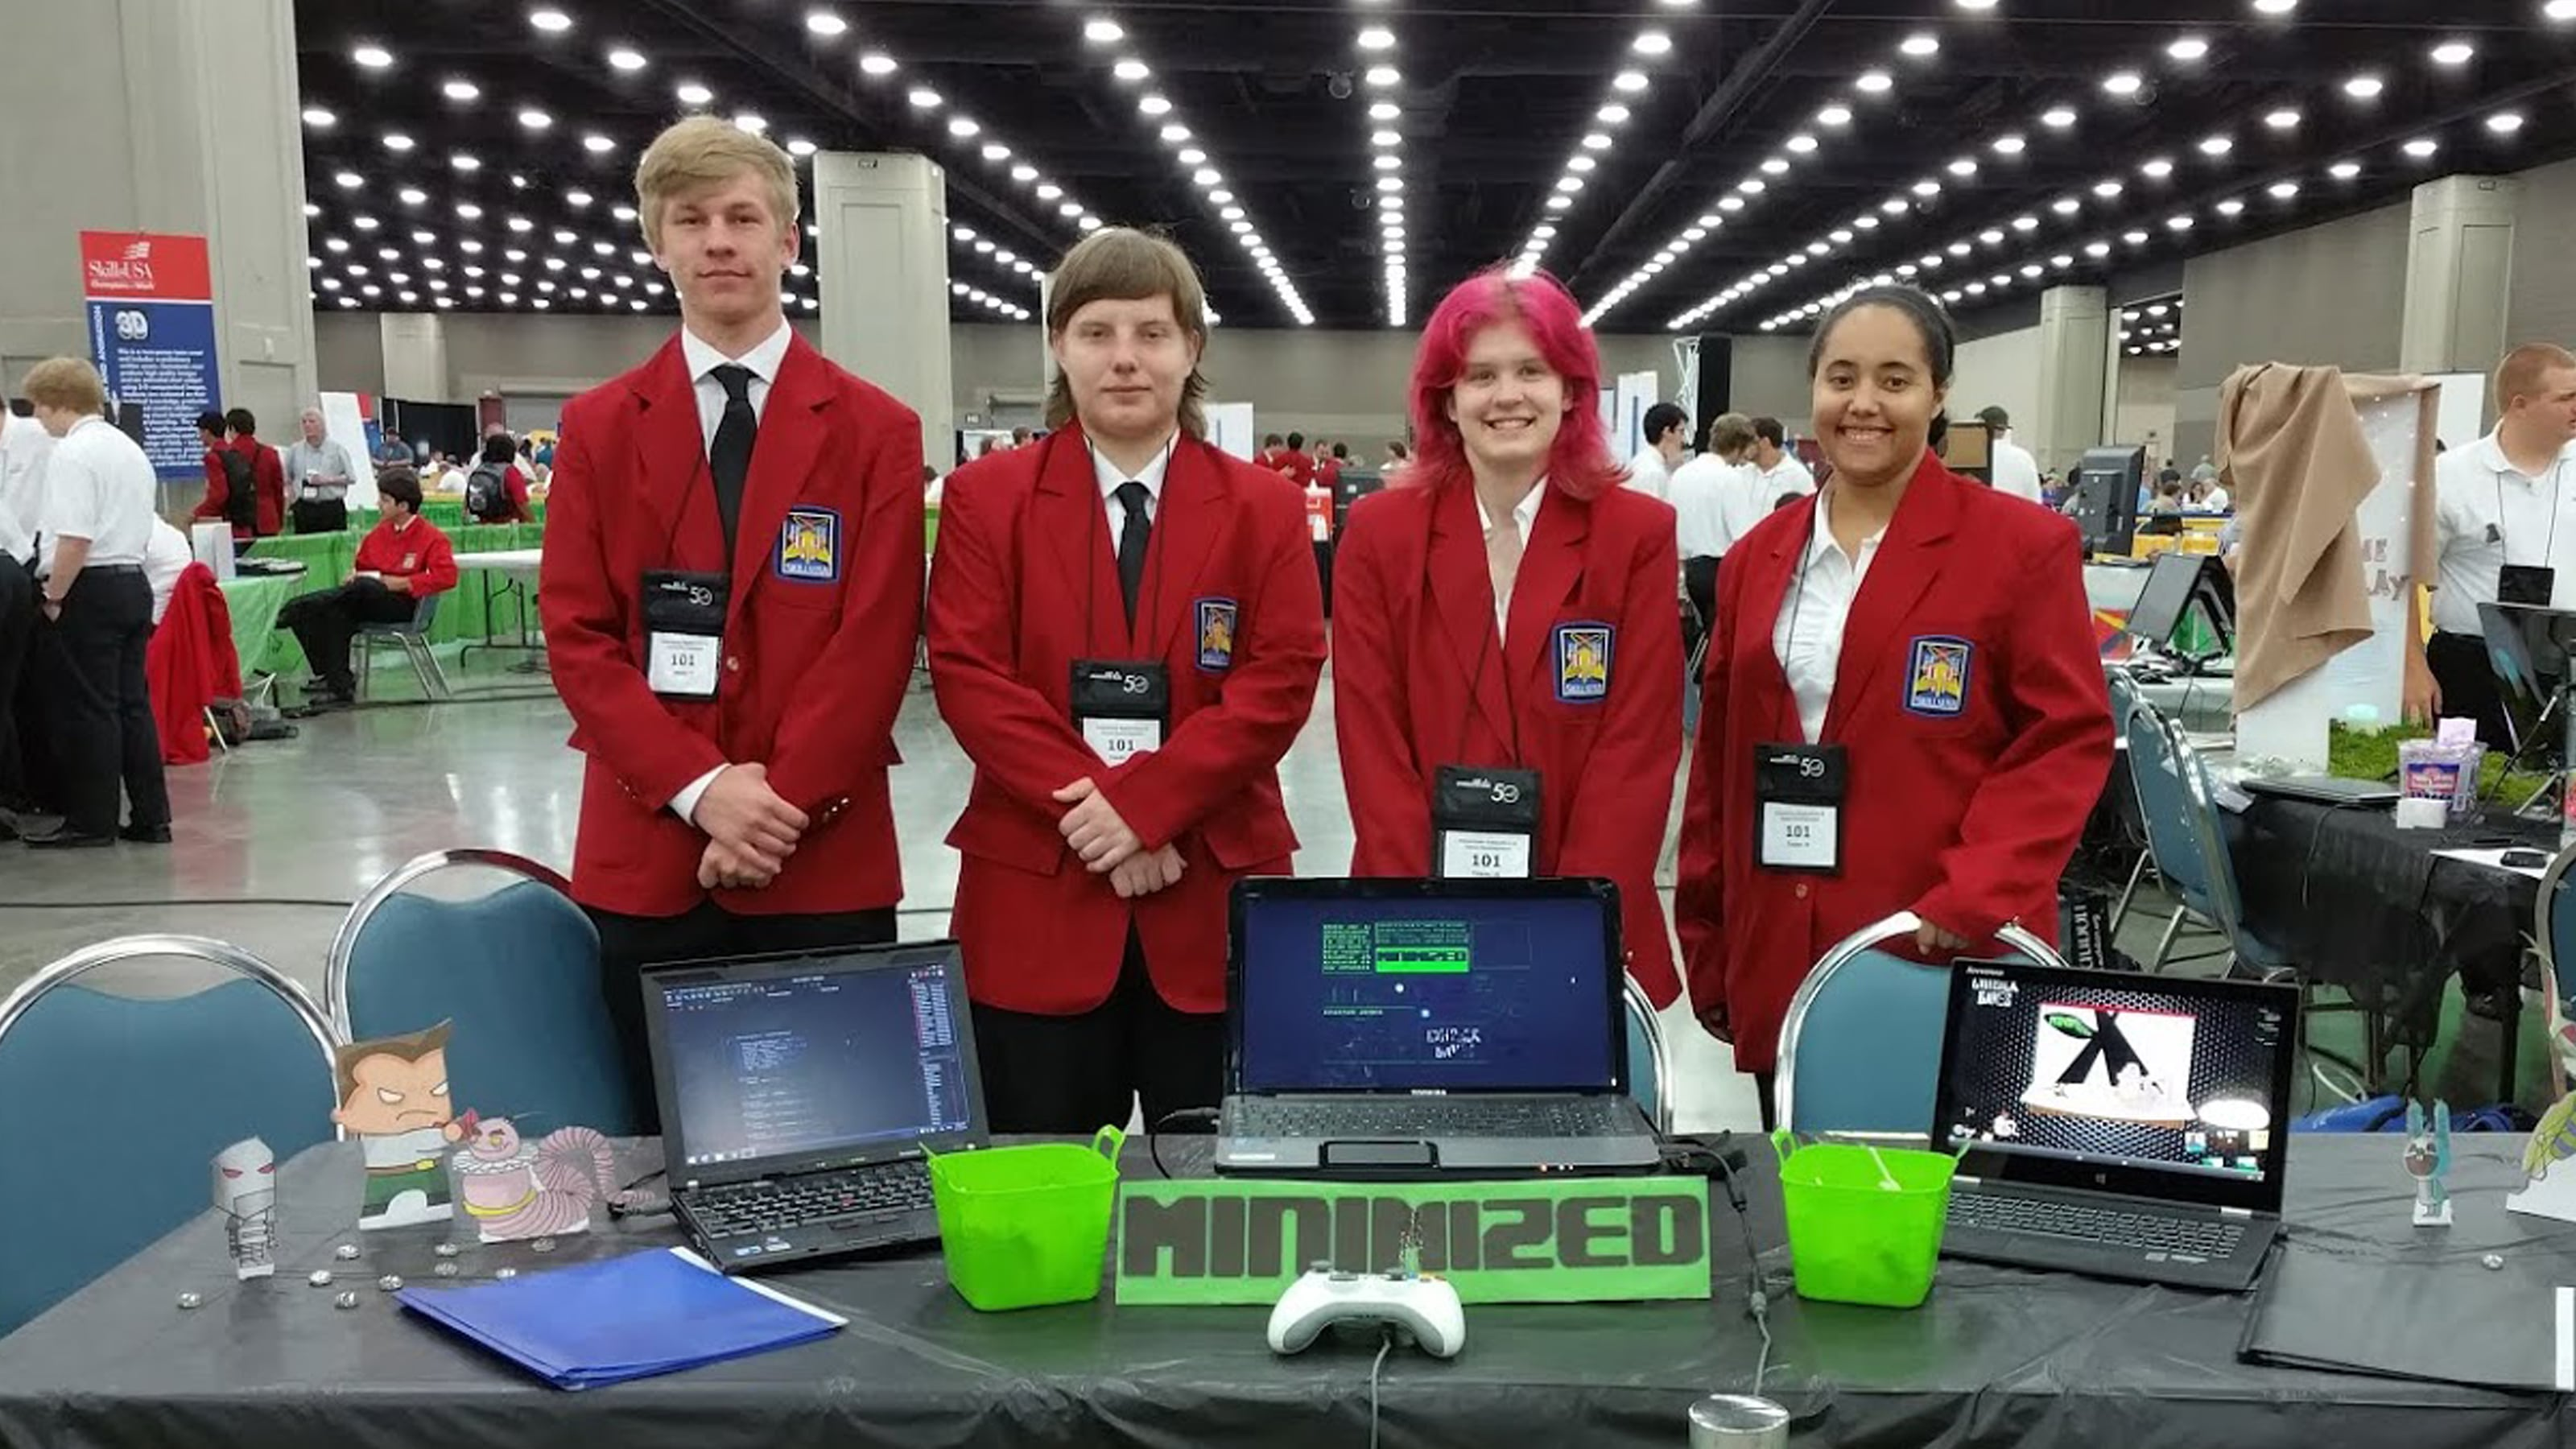 DigiPen WANIC Academy students posing in matching red jackets at their booth at the SkillsUSA competition